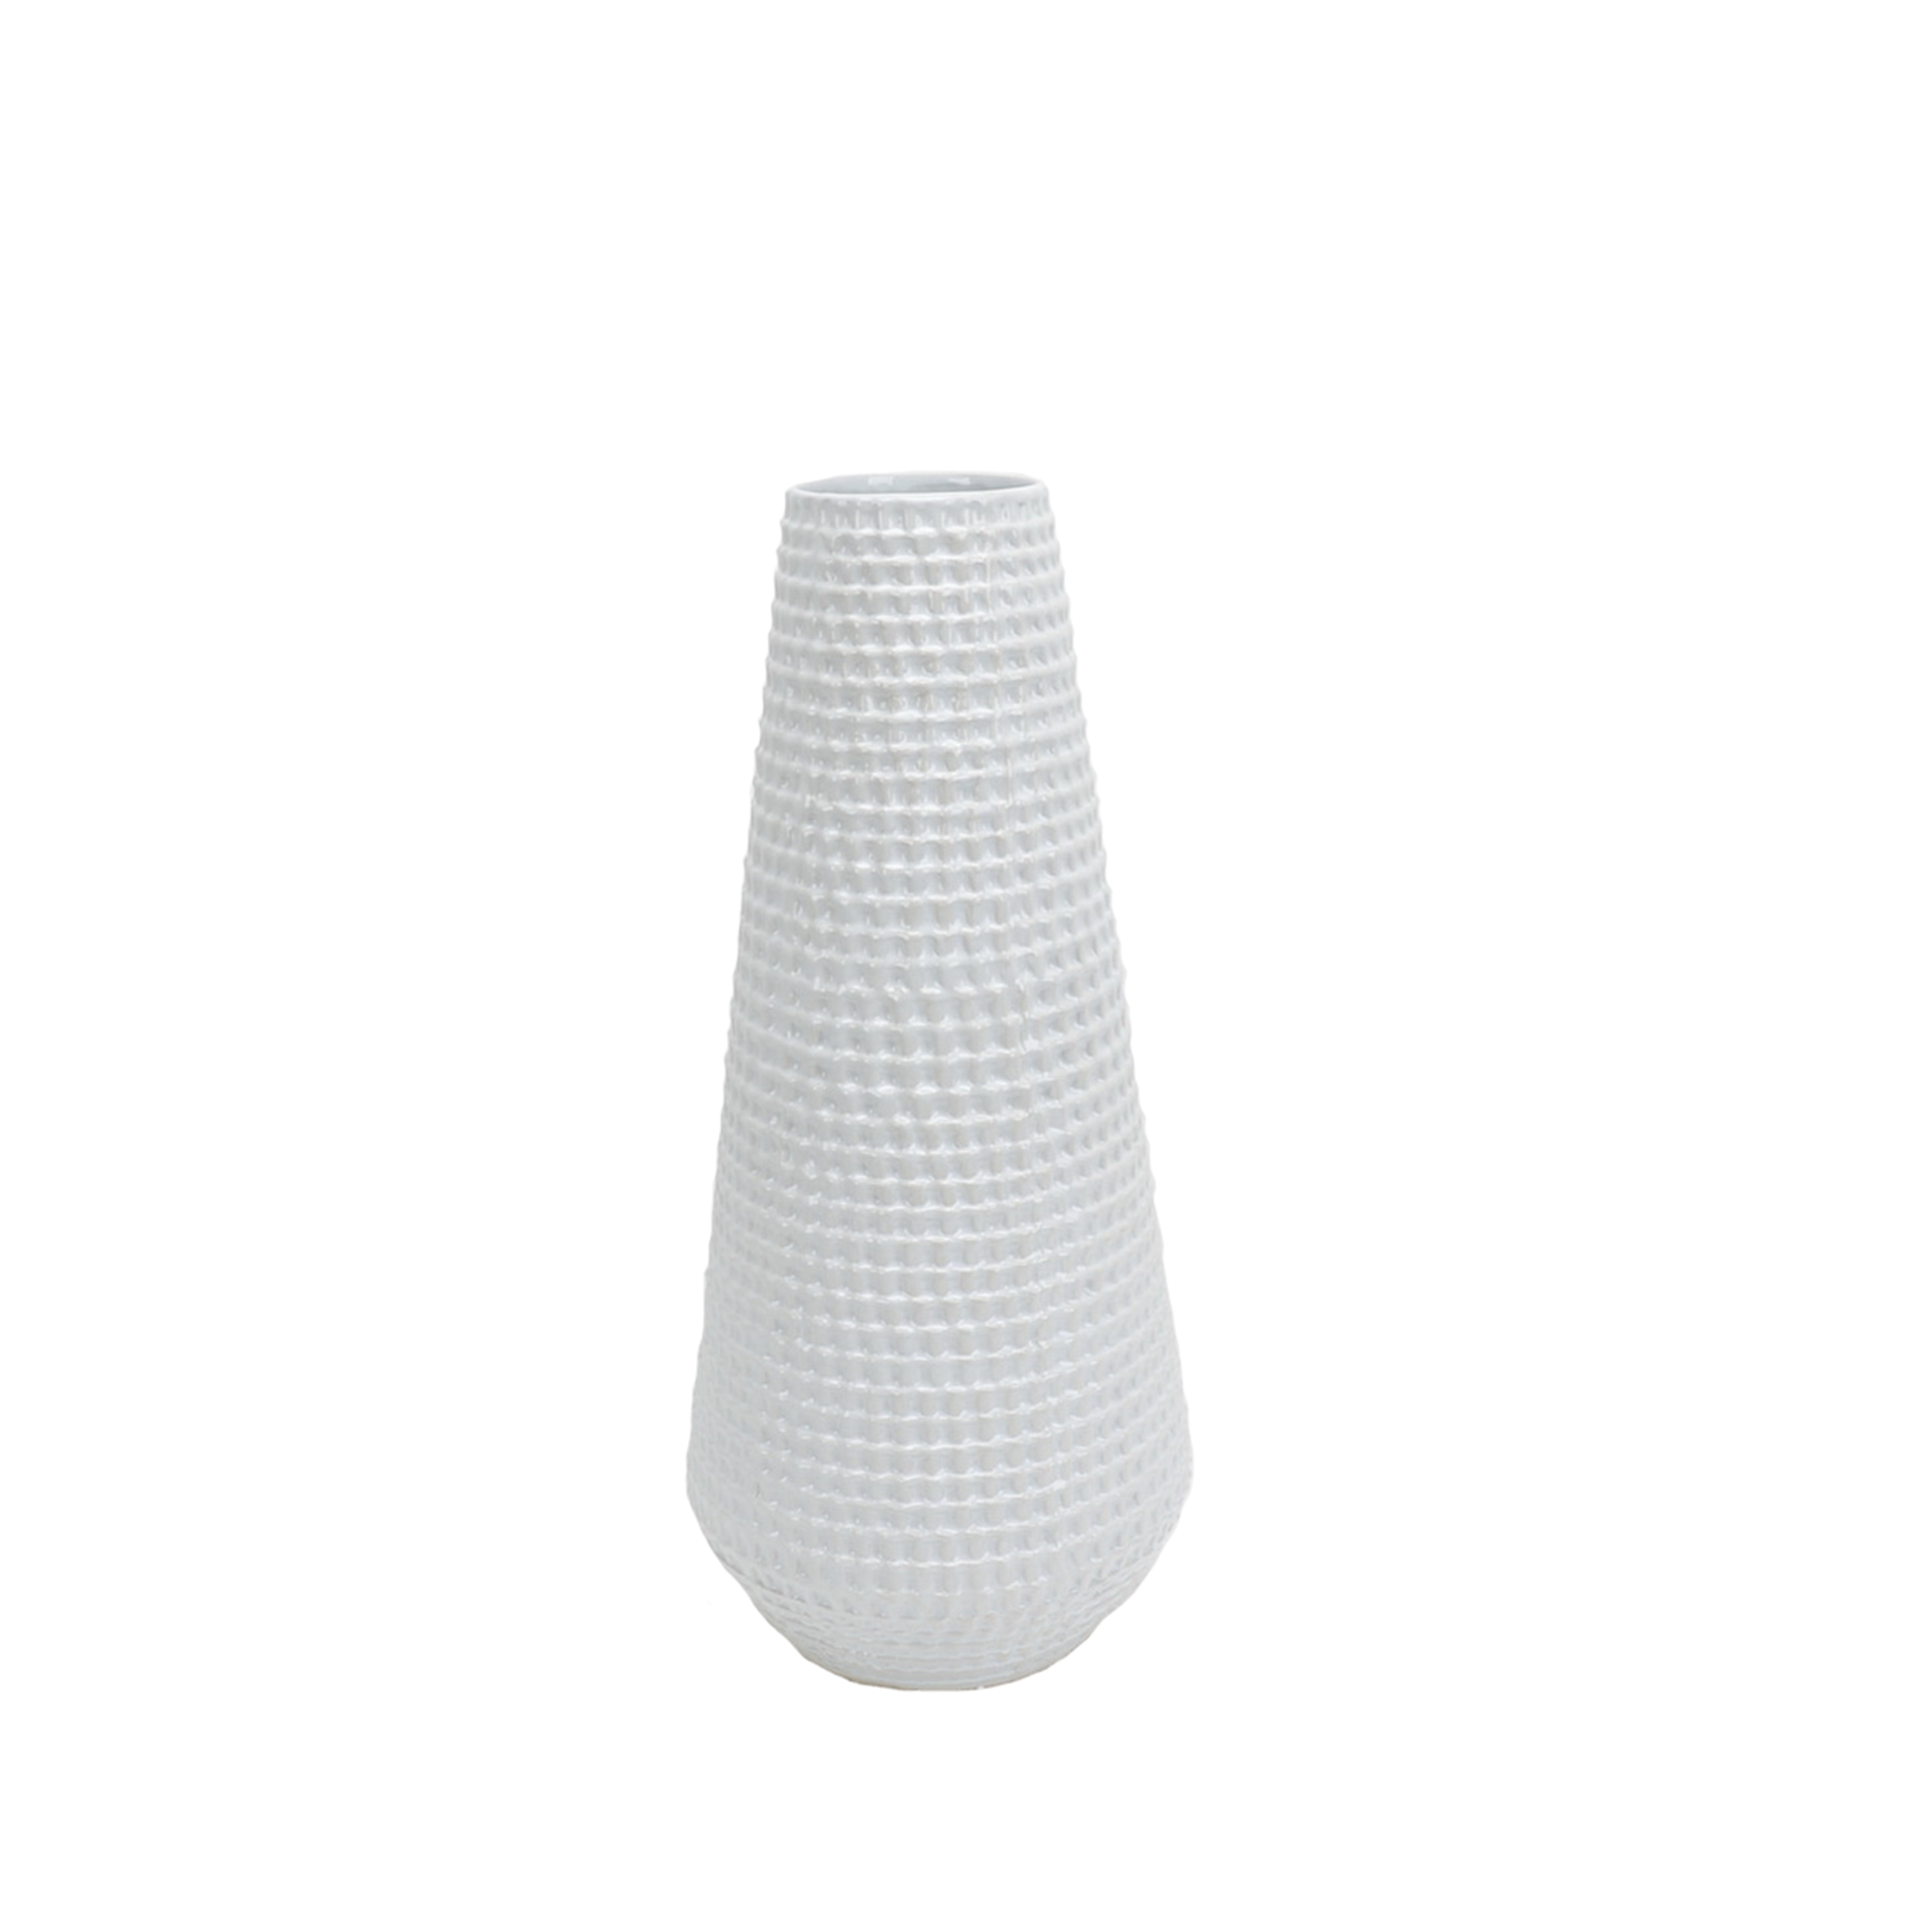 Rope Textured Ceramic Vase with Tapered Bottom, Large, White